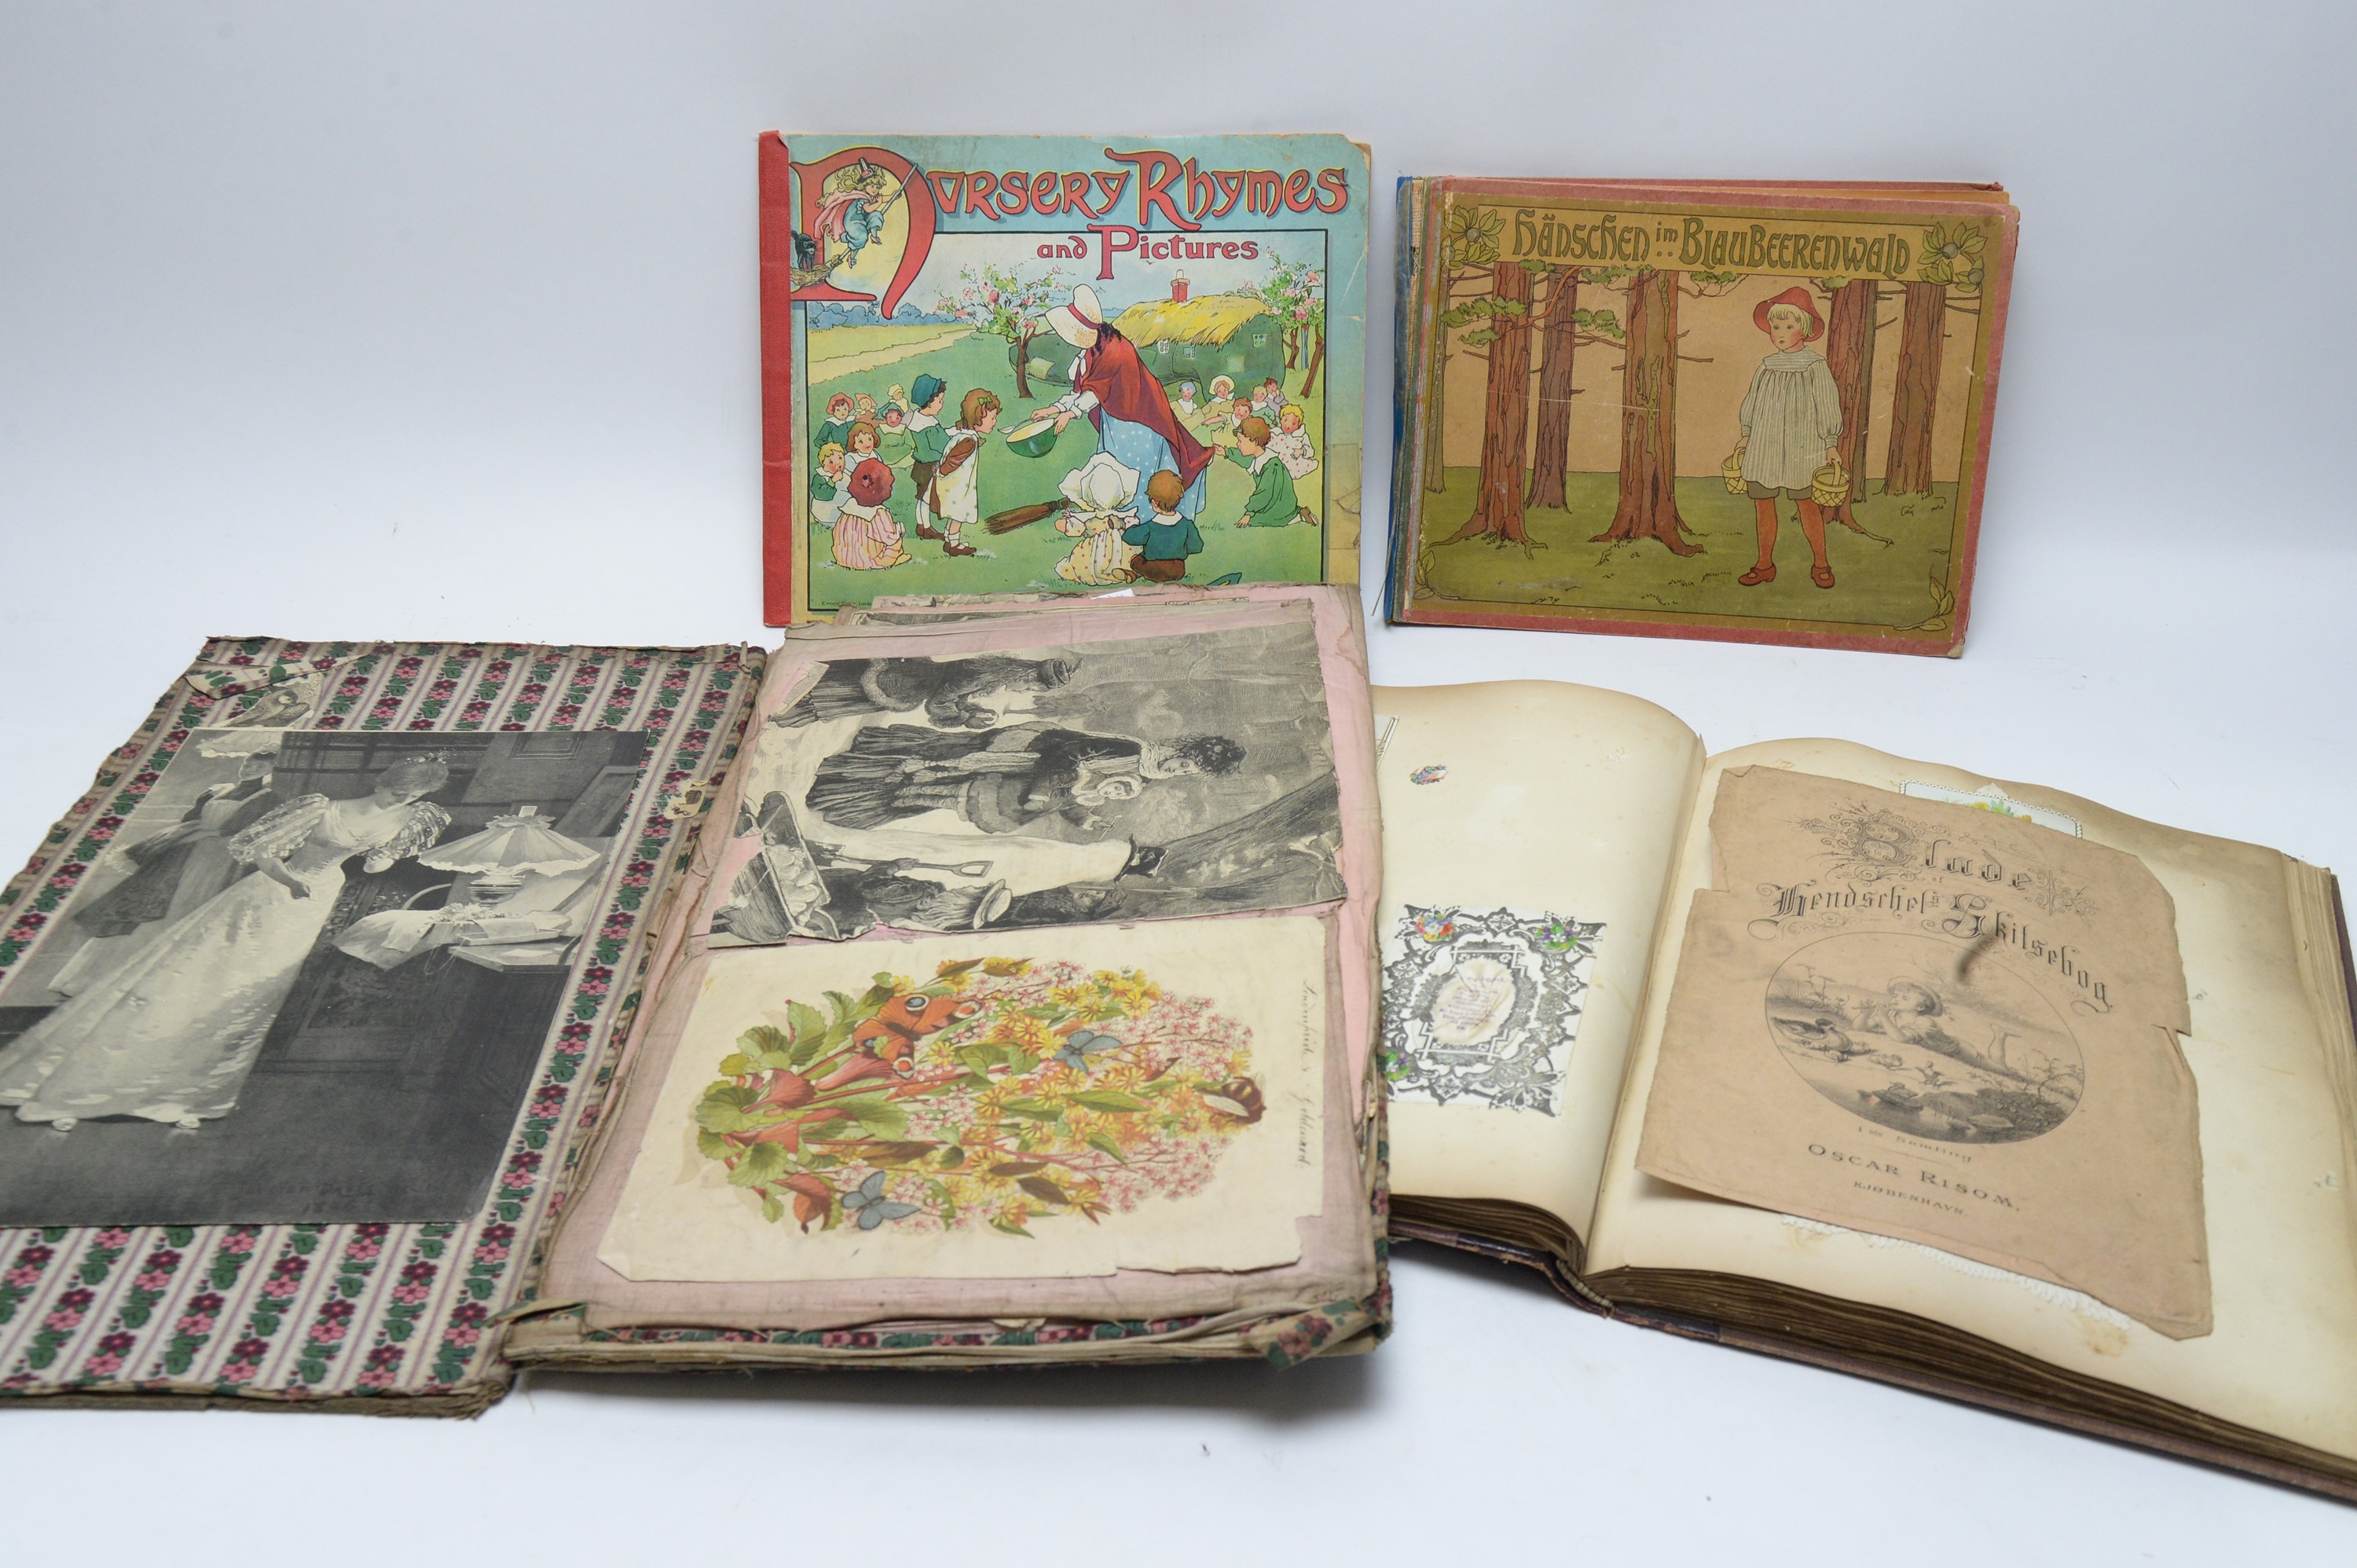 Nister (Ernest) and other Authors; and miscellaneous items. - Image 2 of 6